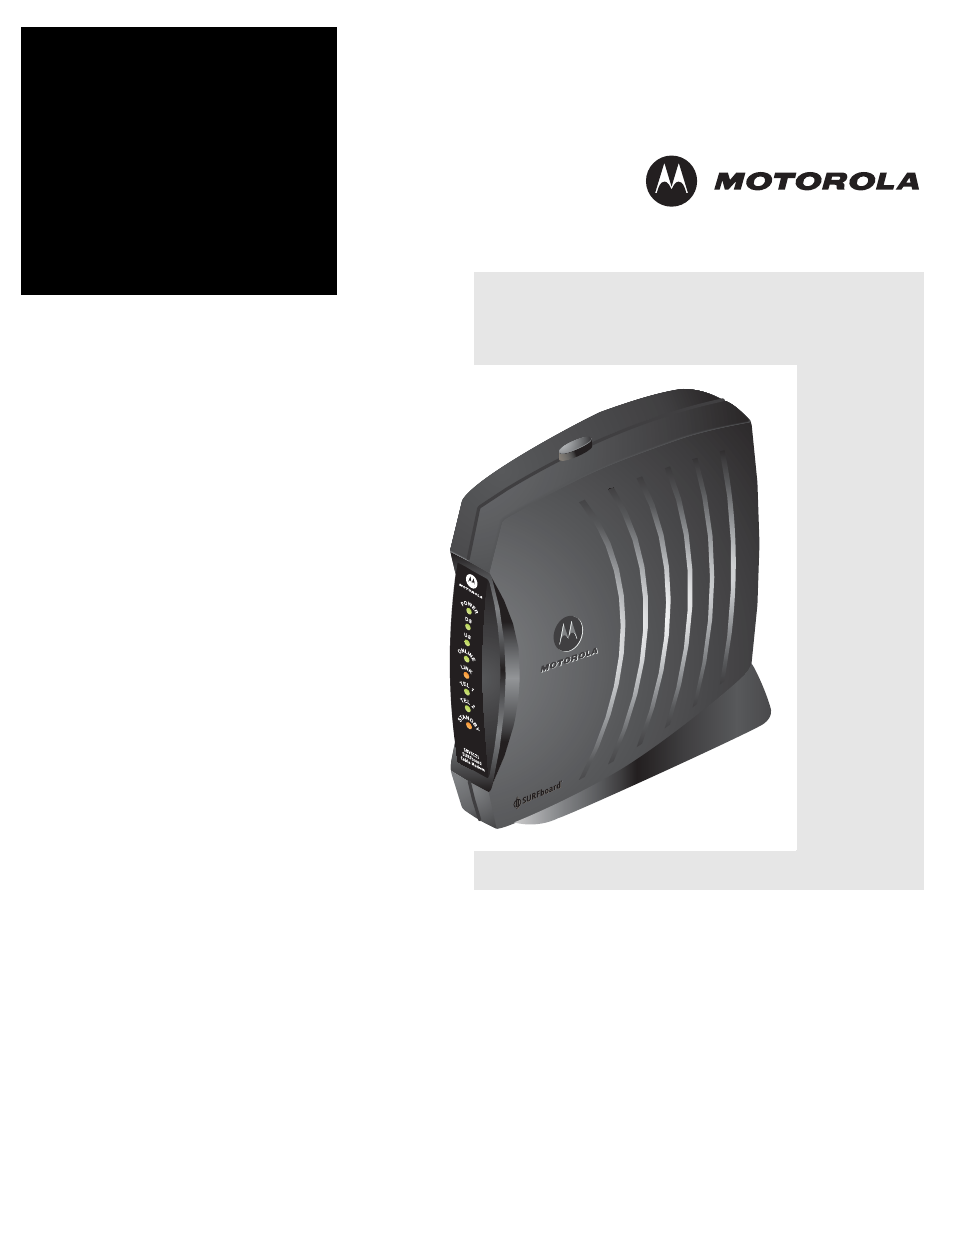 User guide. Sbv5121 voip cable modem pdf.